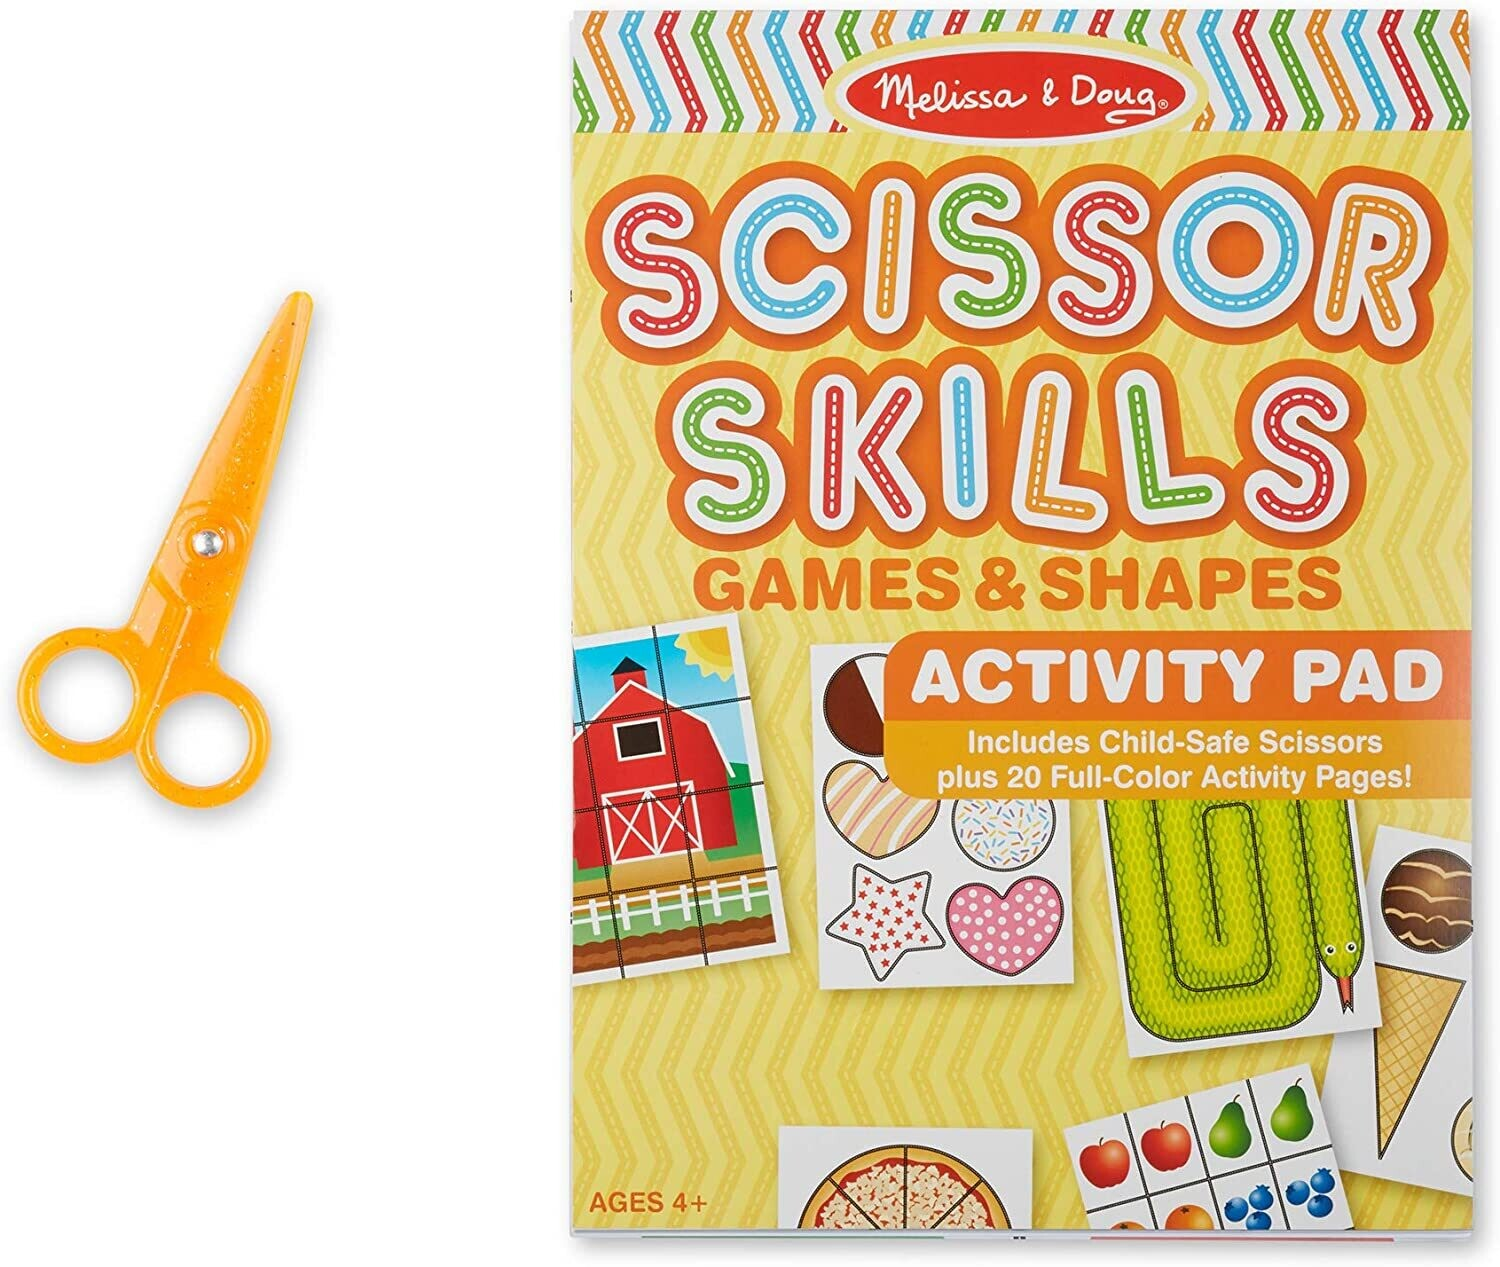 Scissor Skills Preschool Workbook for Kids: A Fun Cutting Practice Activity Book for Toddlers and Kids ages 3-5: Scissor Practice for Preschool ... 40 Pages of Fun Animals, Shapes and Patterns Paperba